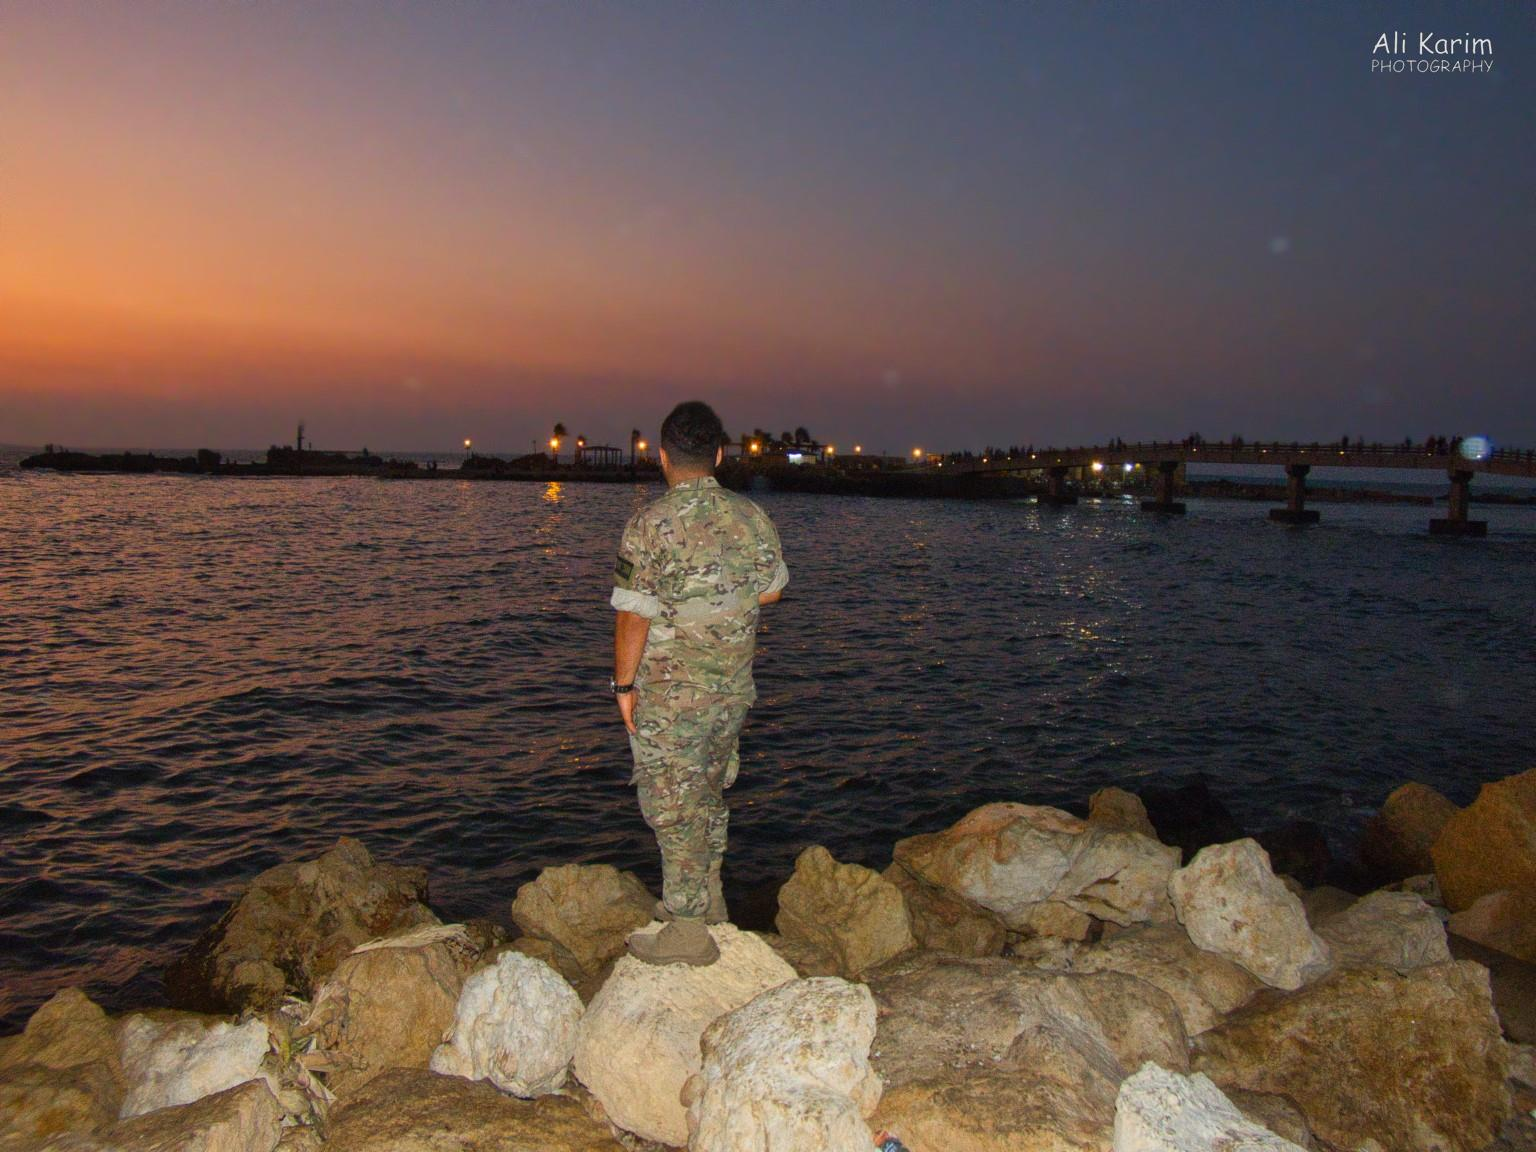 Beirut to Tripoli This soldier asked me to take his picture and send to him on WhatsApp; small island offshore linked by a bridge